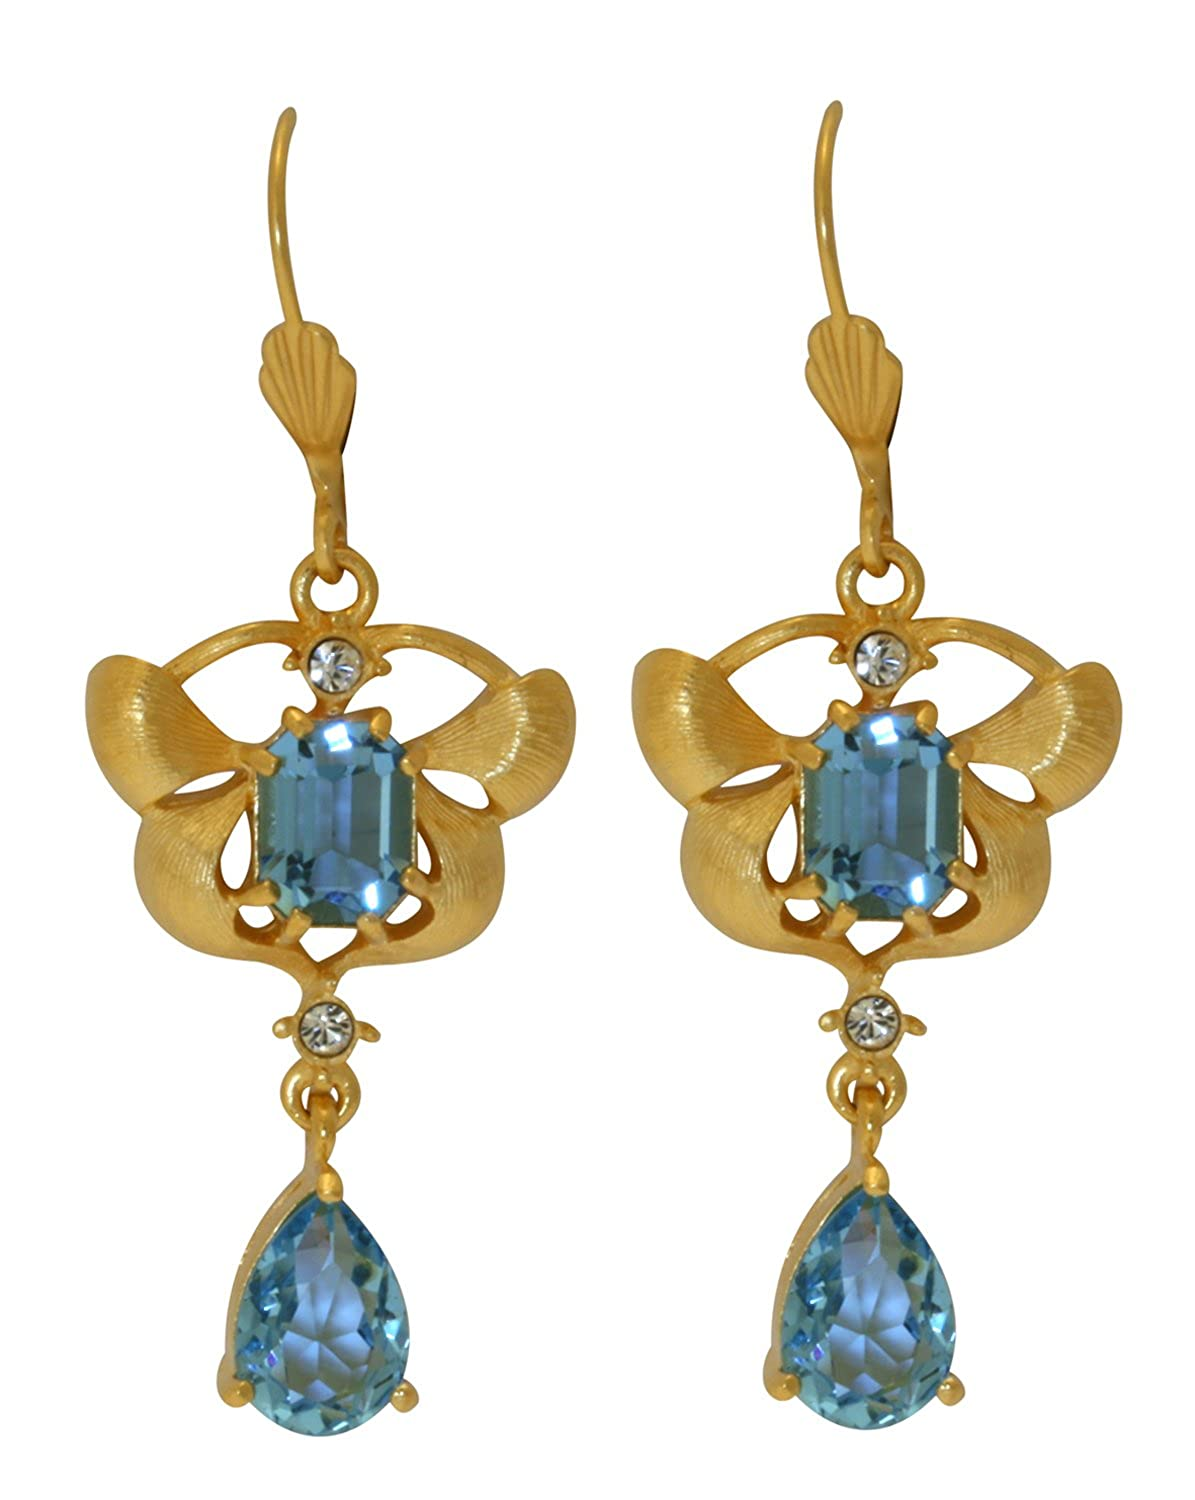 fa56b1564 Amazon.com: Orchid Delight Blue Earrings - Swarovski Crystal - Licensed by  V&A Victoria and Albert Museum, London: Jewelry